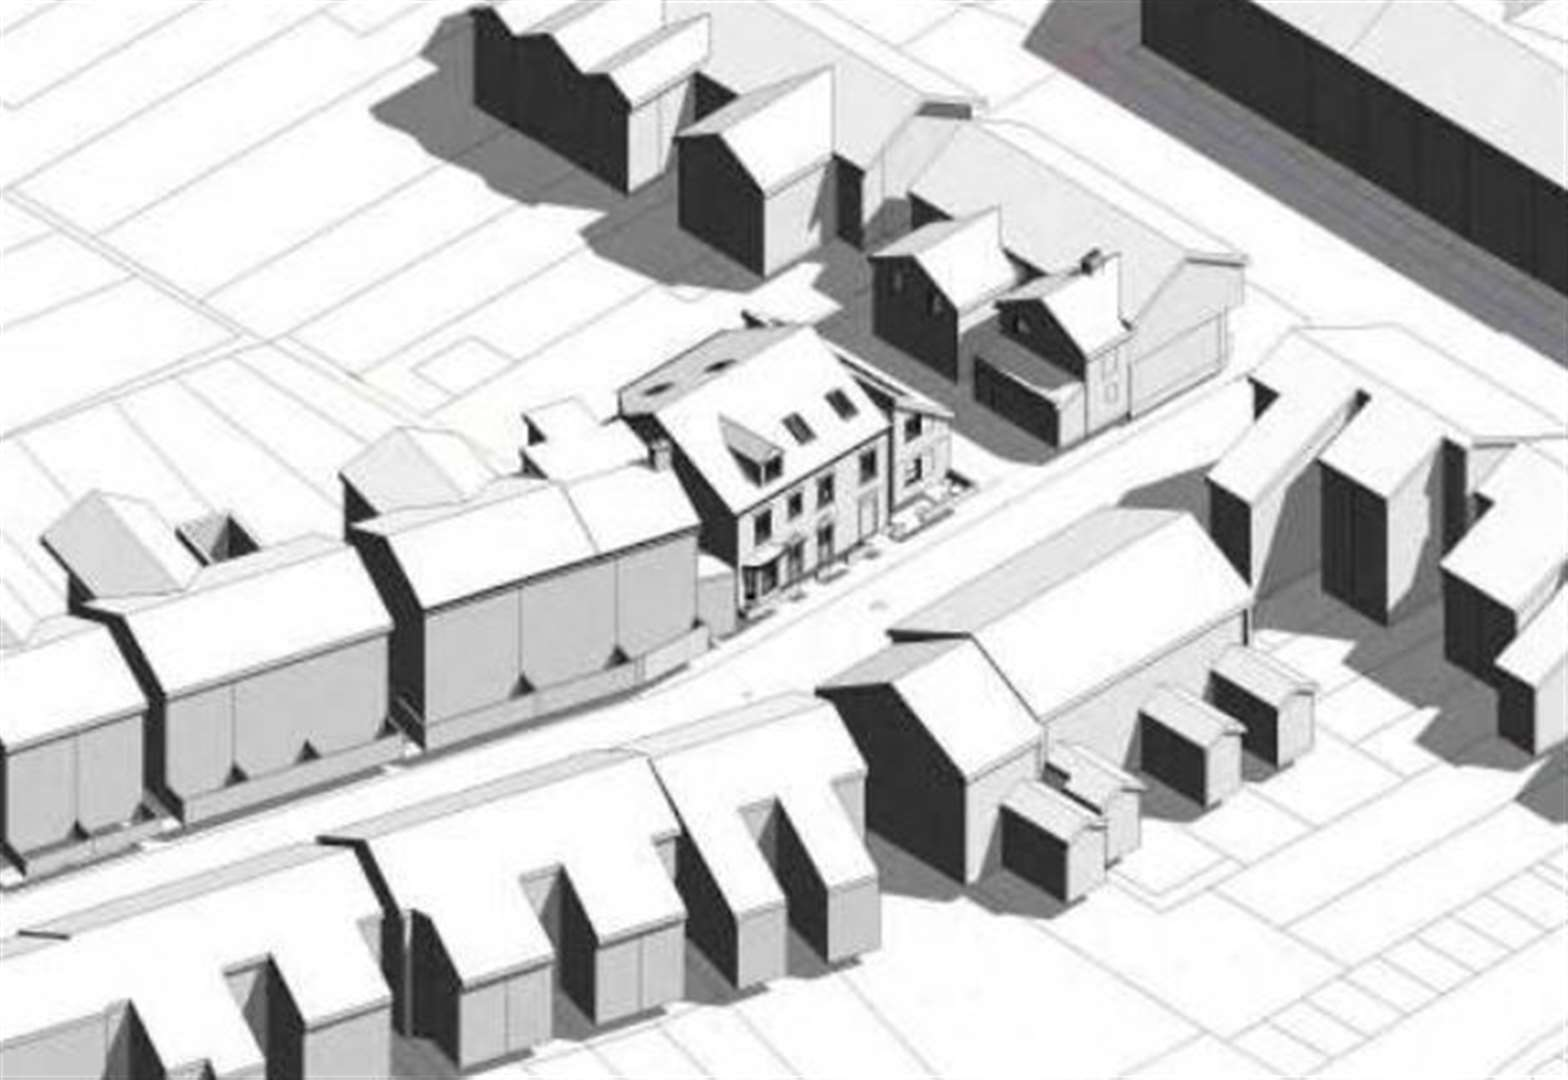 Five flats planned for one building turned down by Cambridge City Council